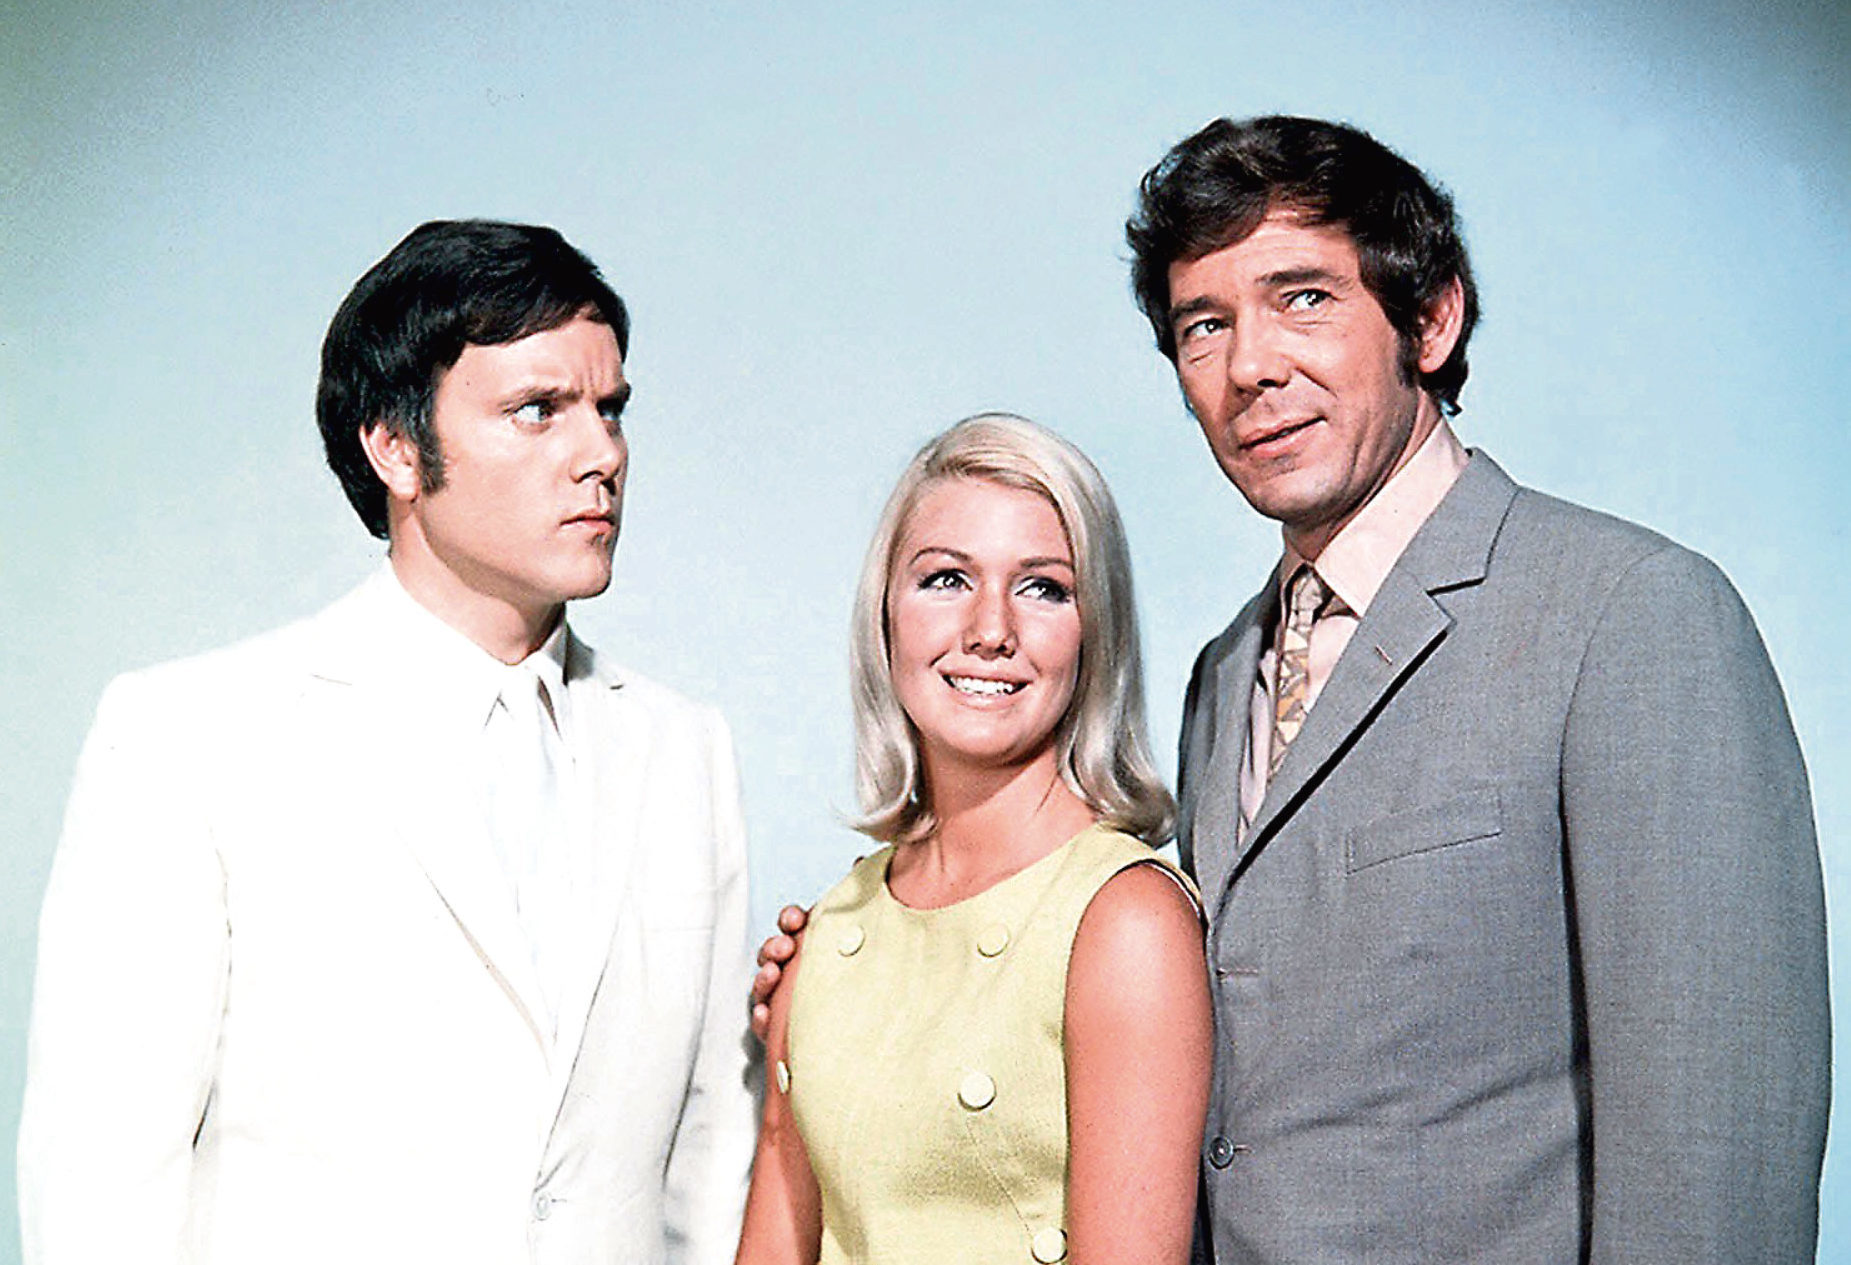 Annette with her co-stars Kenneth Cope and Mike Pratt (ITV)